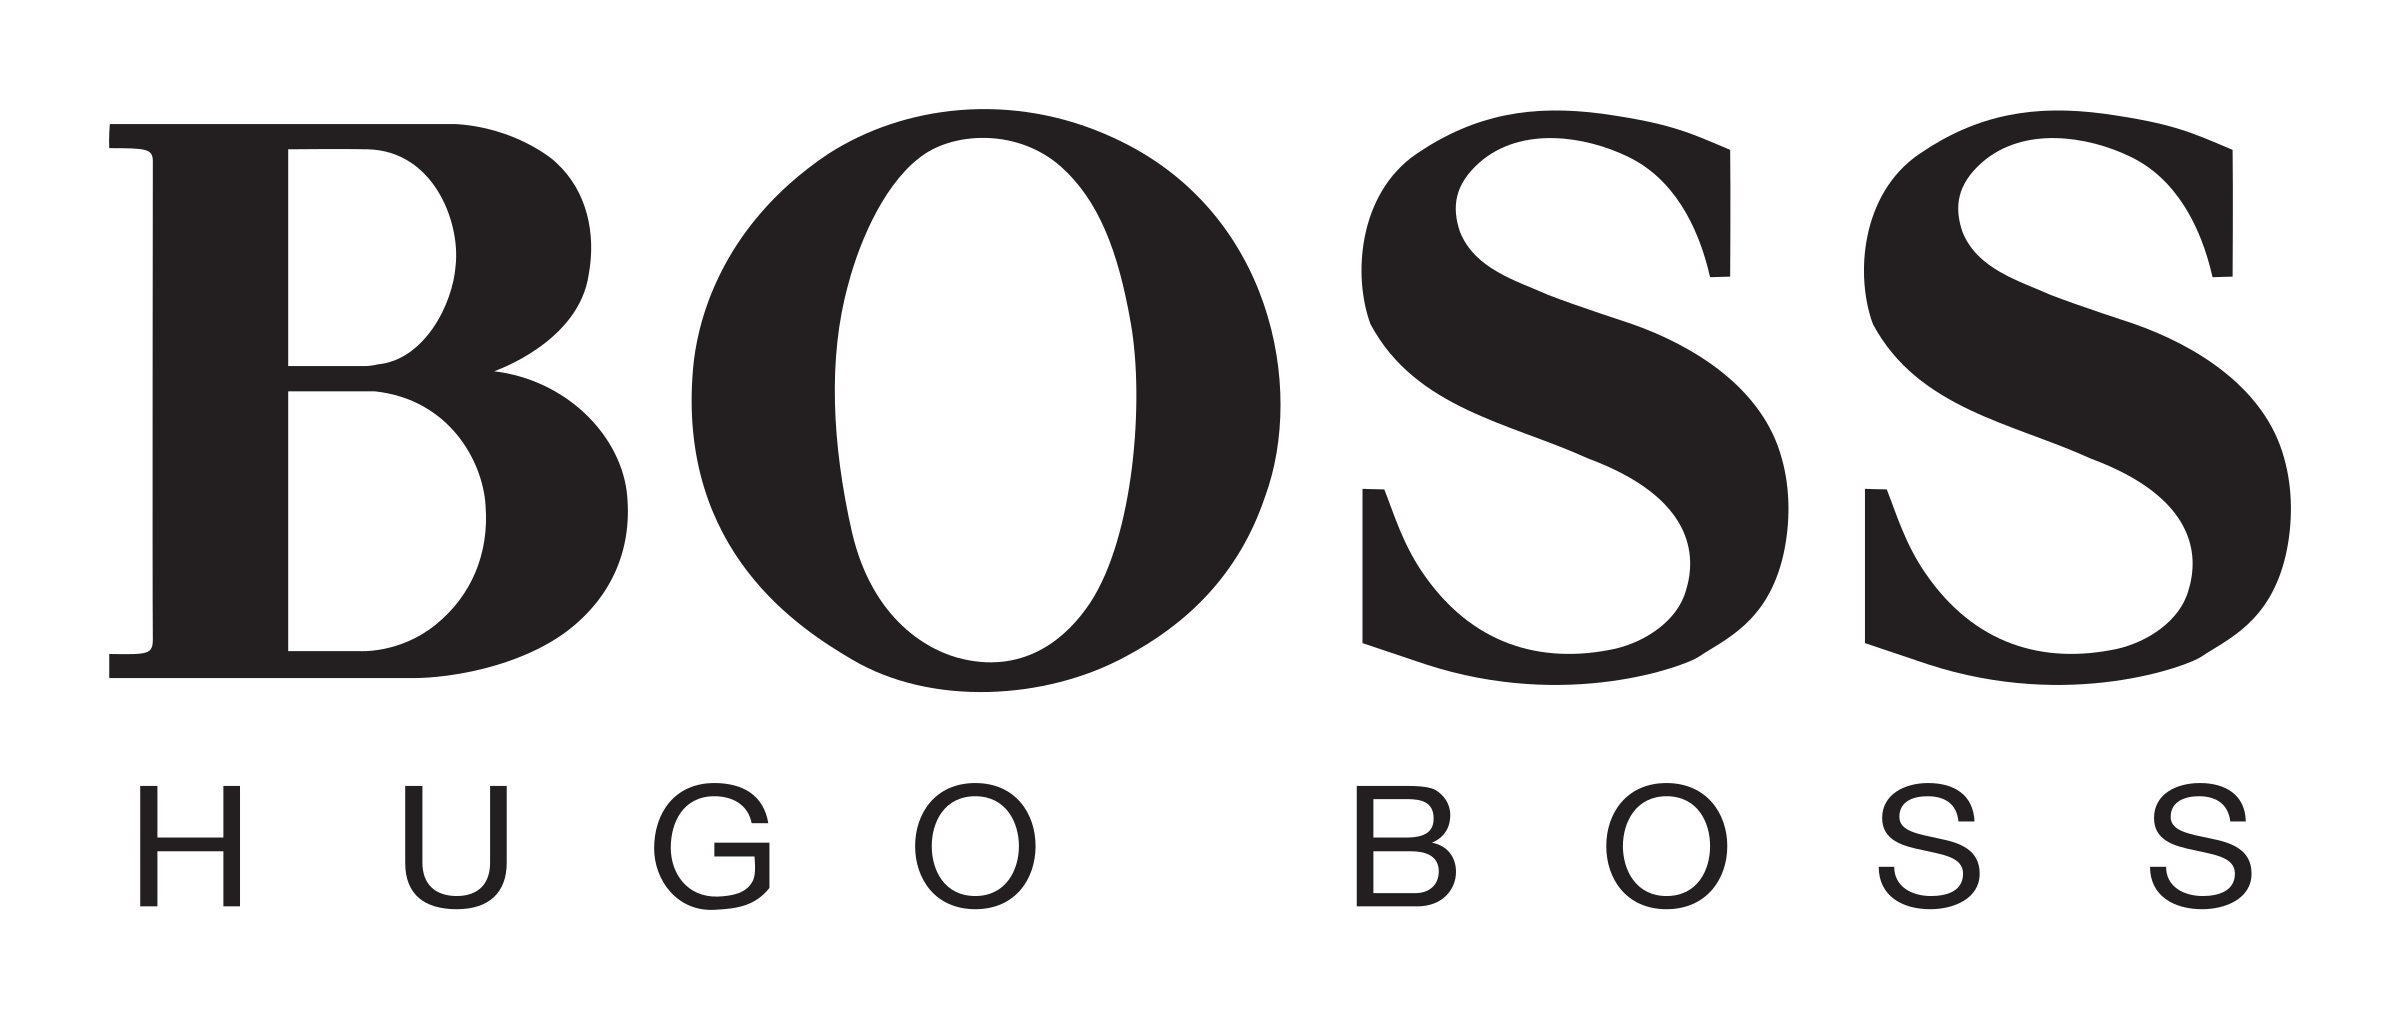 Hugo Boss Logo PNG Transparent & SVG Vector.